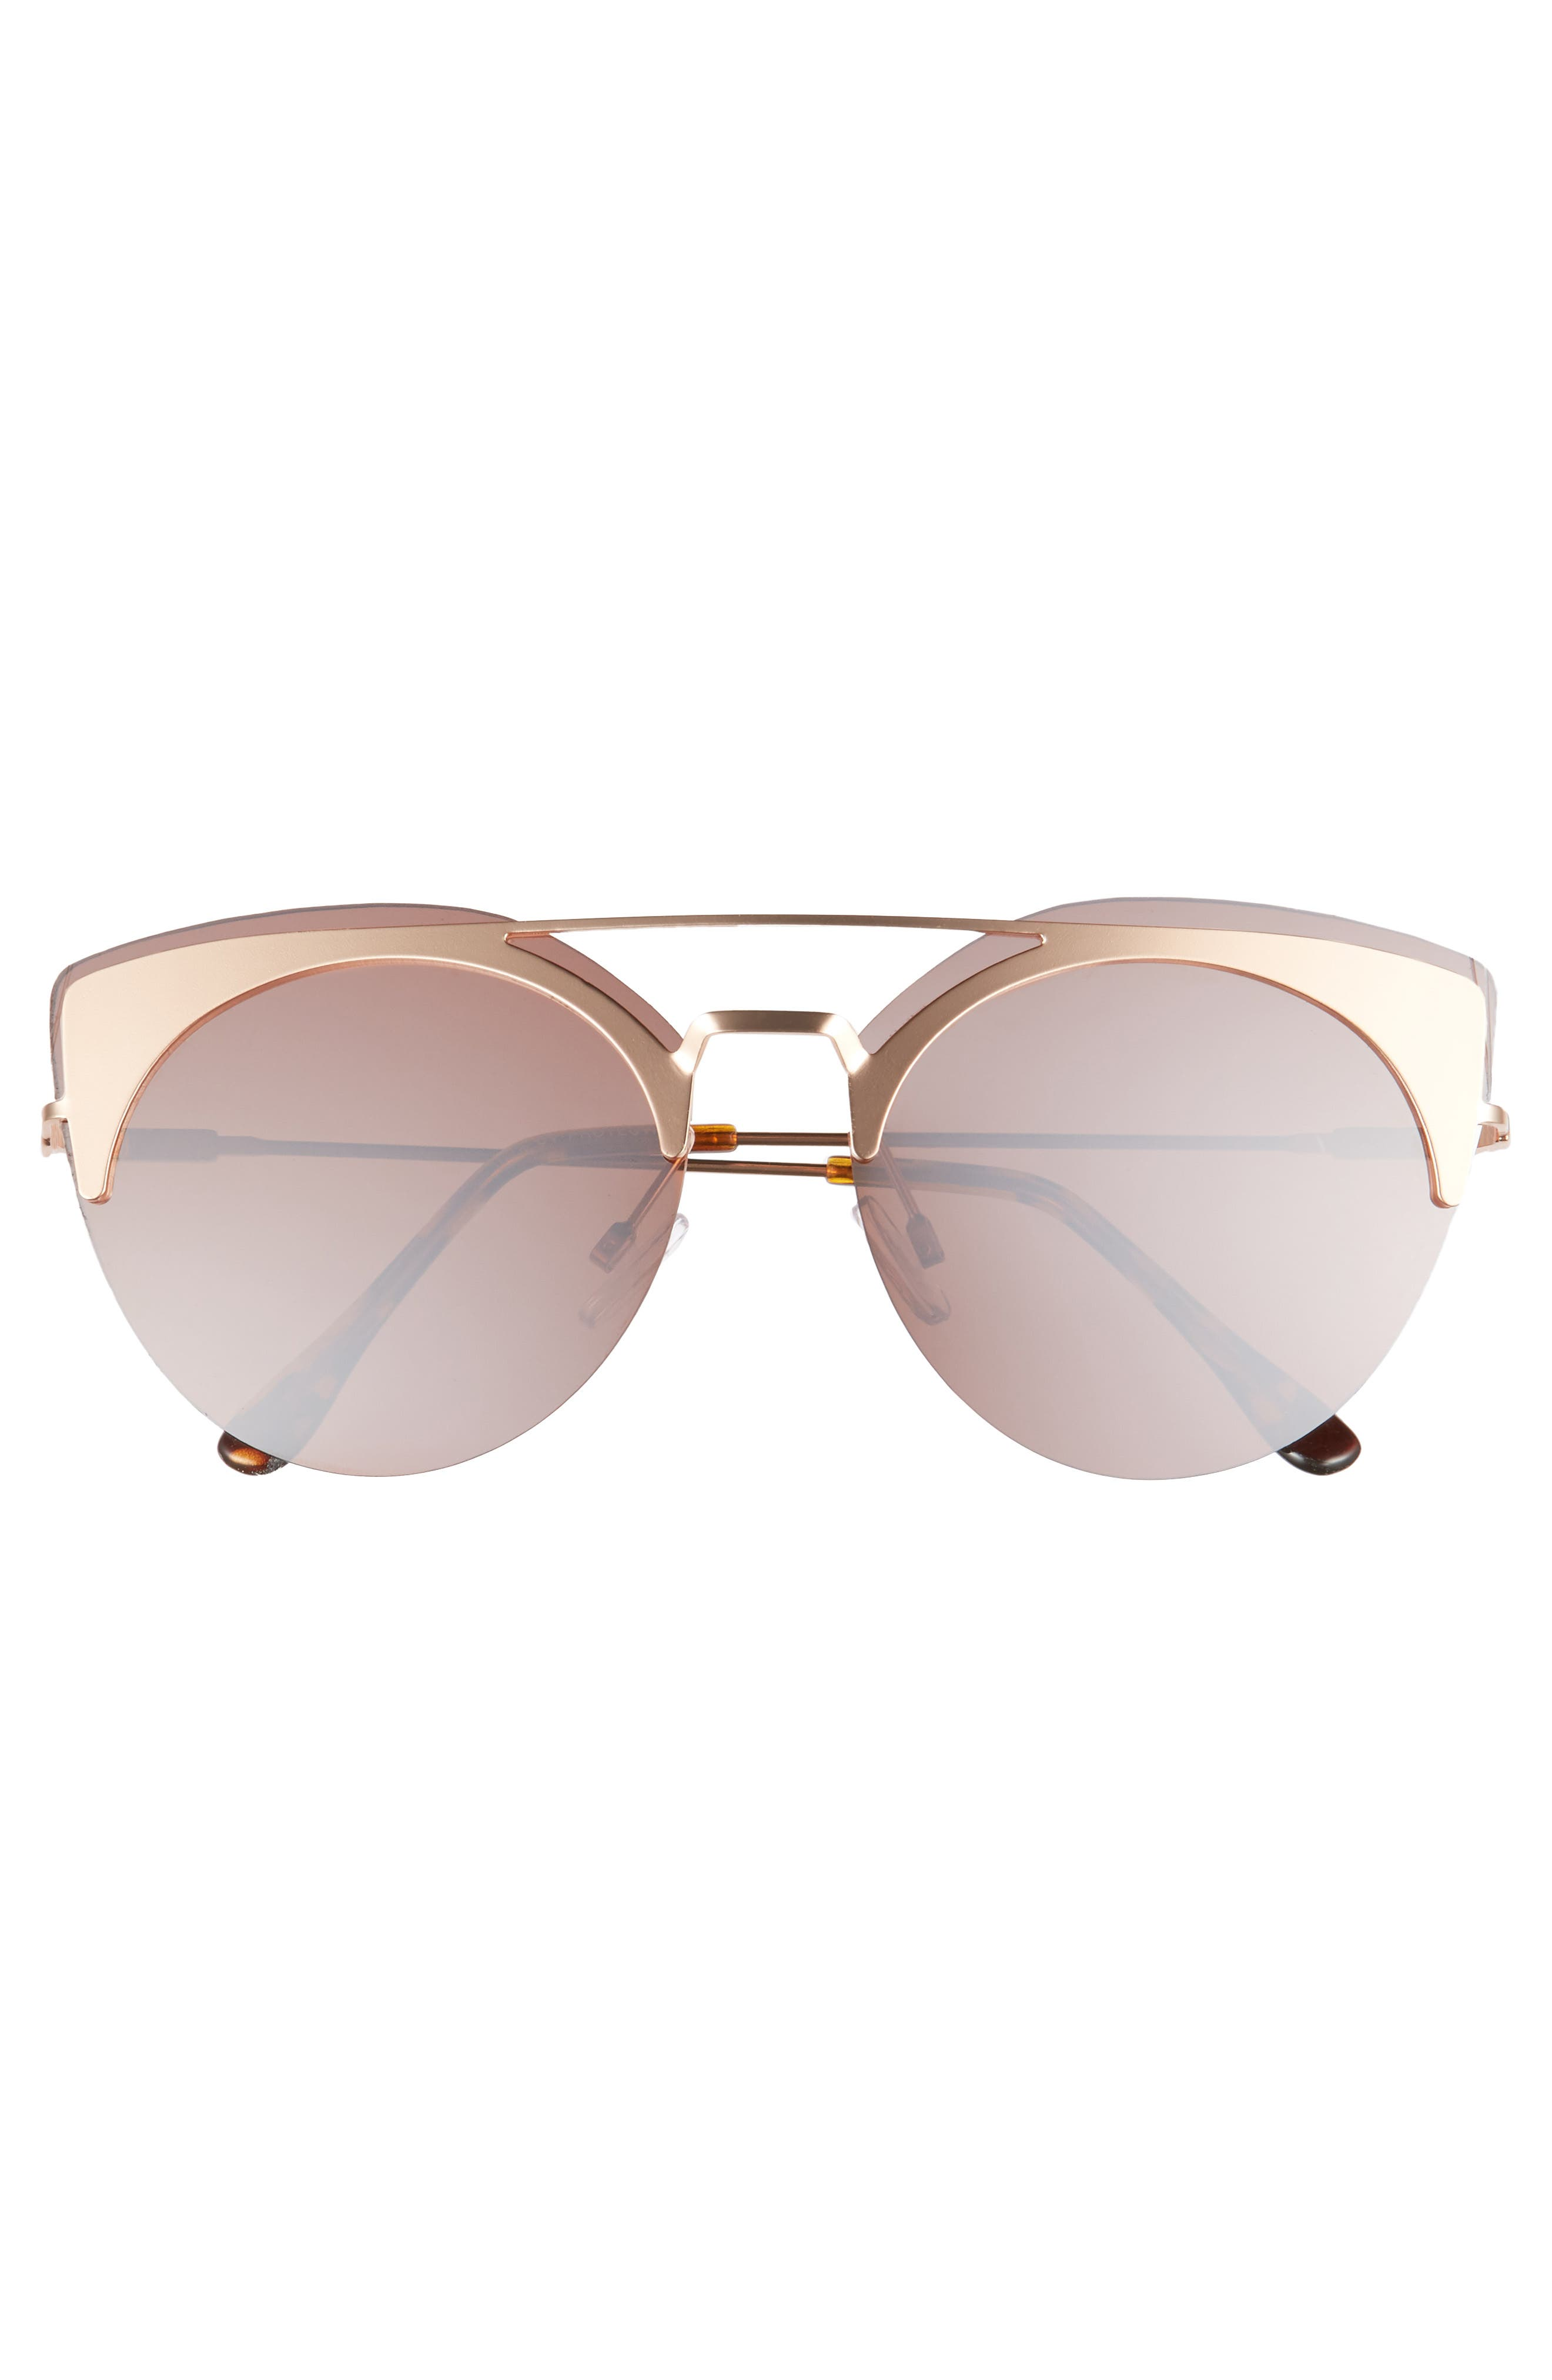 54mm Round Sunglasses,                             Alternate thumbnail 3, color,                             710